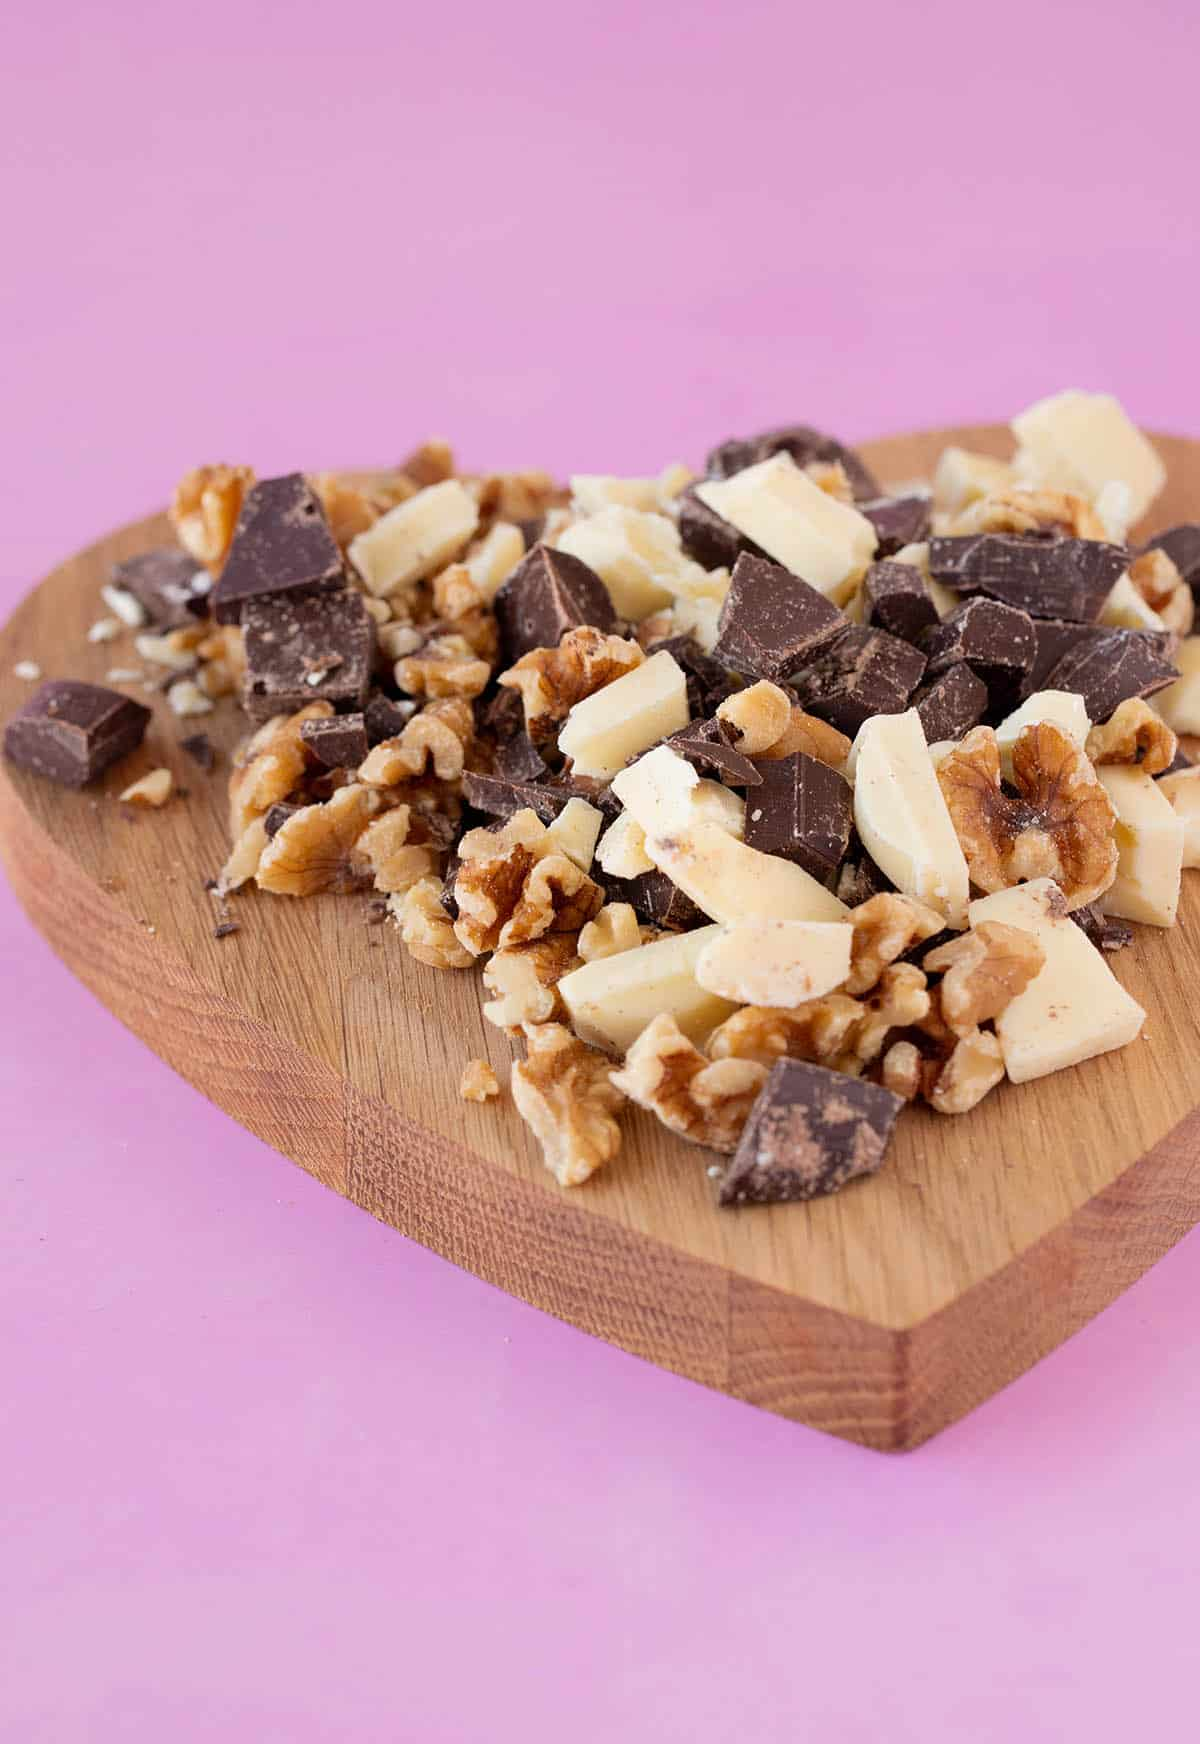 A chopping board with chunks of chocolate on it